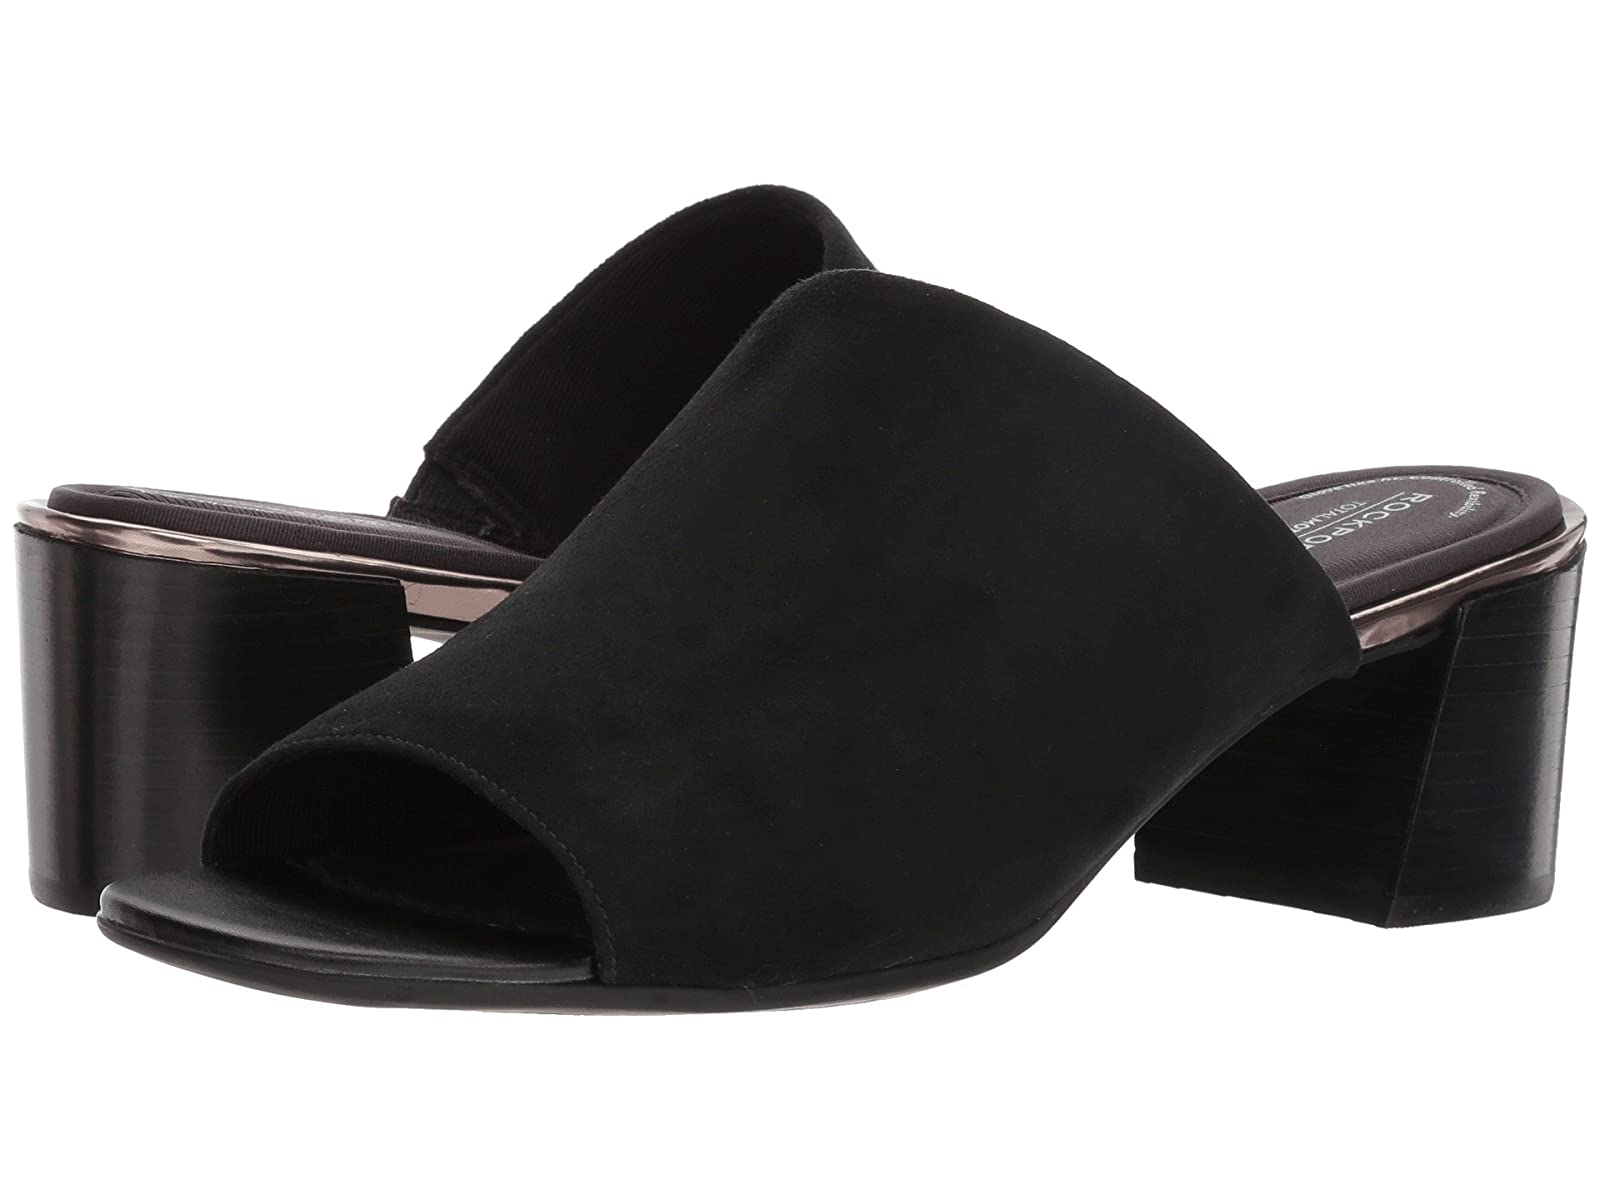 Rockport Total Motion Alaina MuleCheap and distinctive eye-catching shoes